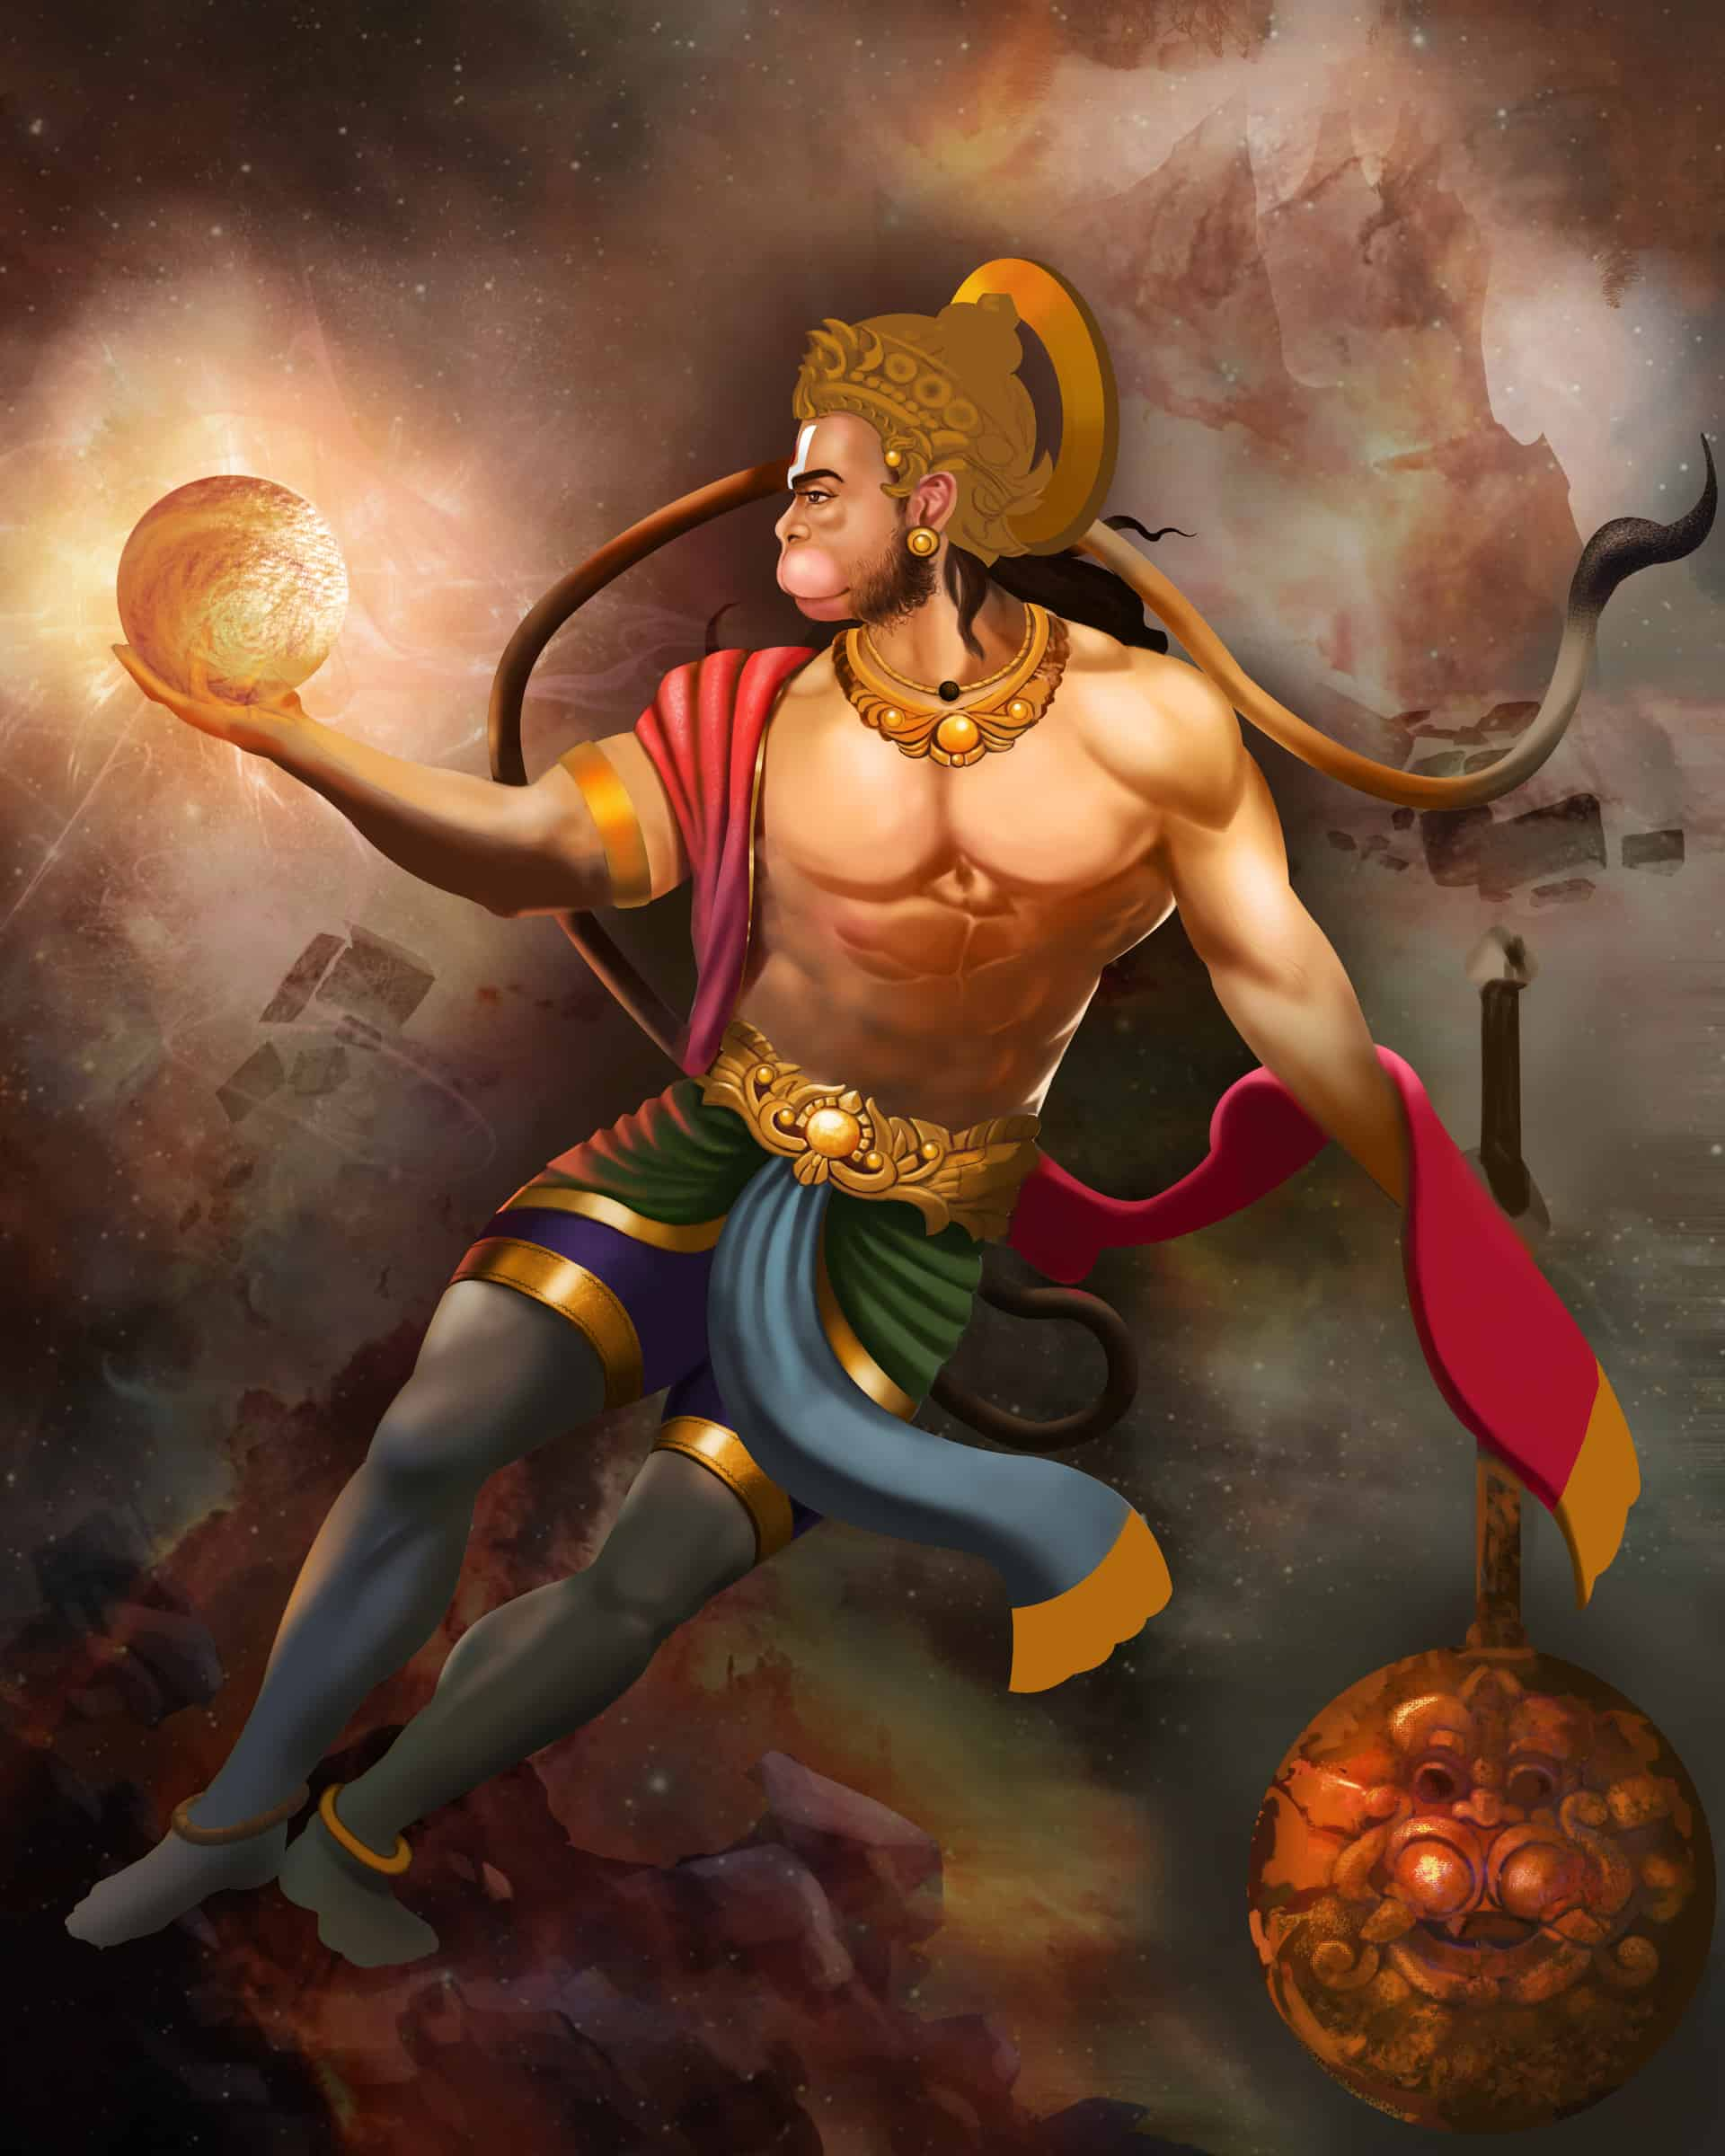 Hanuman The Indian god hd - Hanuman The Indian god